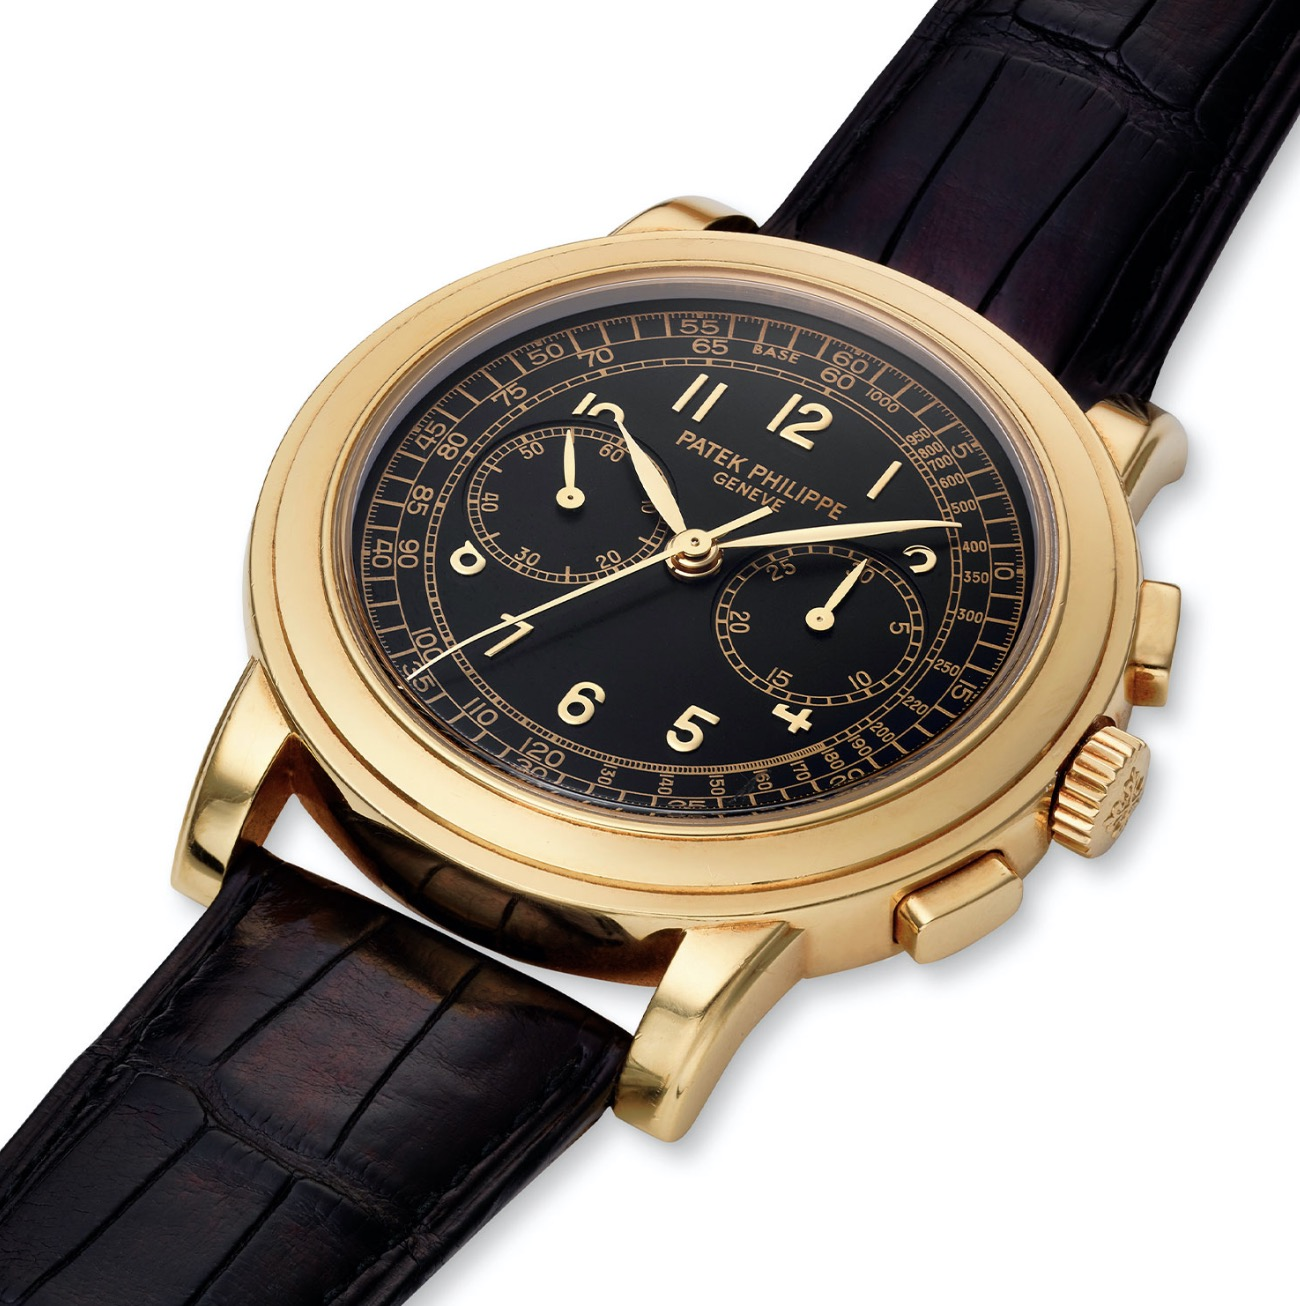 Patek Philippe 18K yellow gold ref. 5070 with box and papers from 2000 - Rolex Passion Market